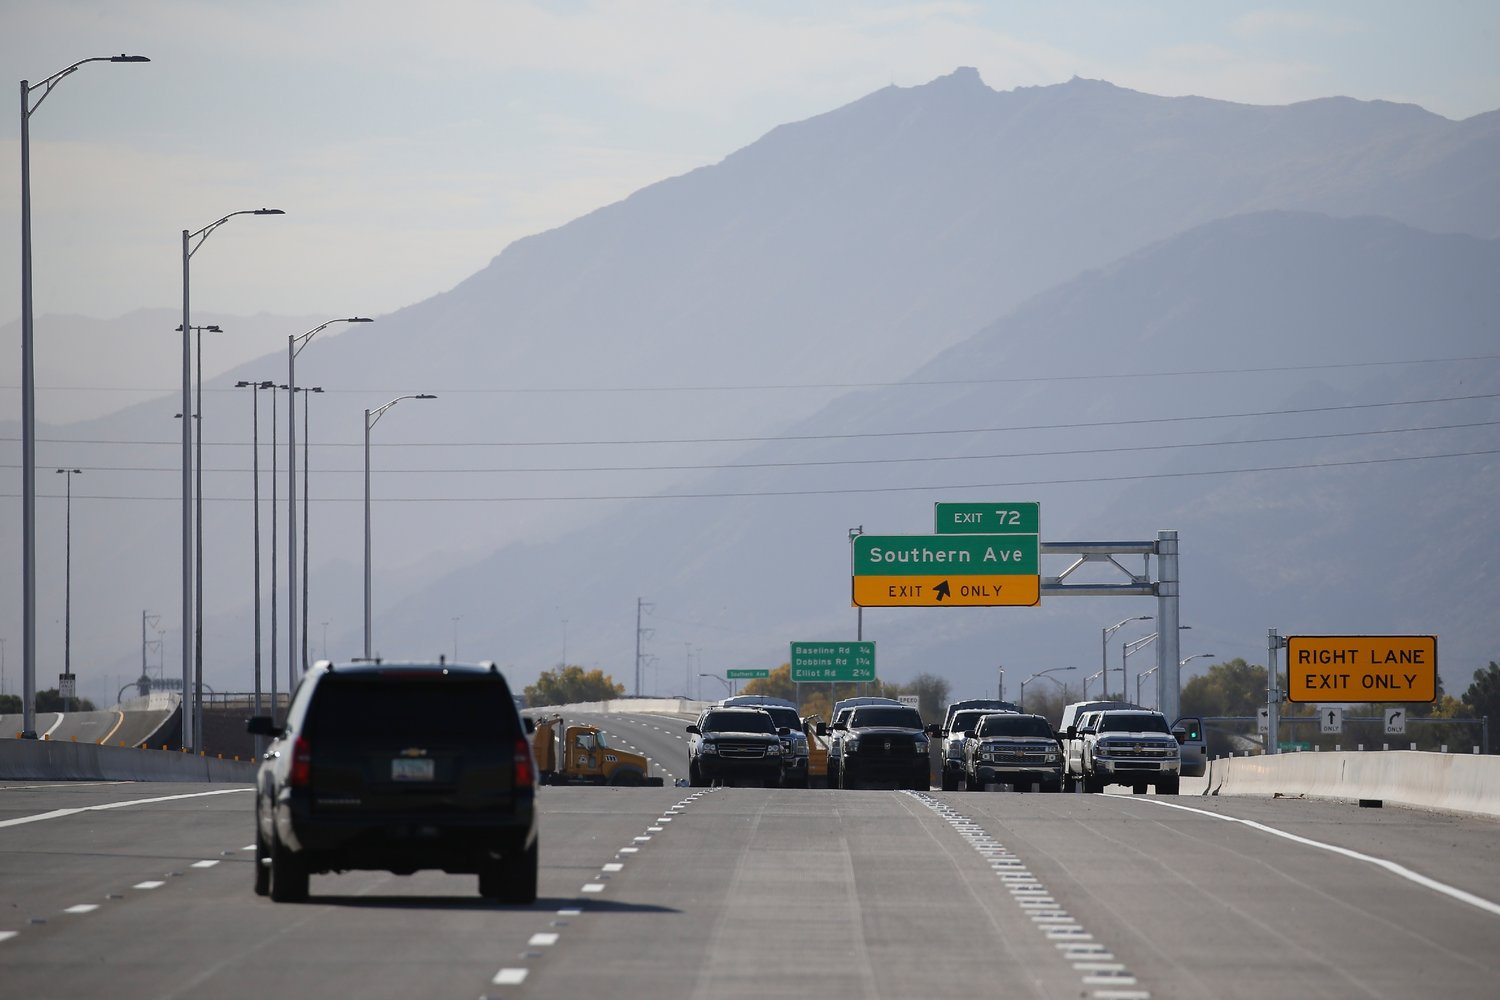 A vehicle with Arizona Gov. Doug Ducey tours the new new South Mountain Freeway after a christening ceremony Dec. 18, 2019 in Phoenix. Since the full opening of the 22-mile freeway on Dec. 21, two wrong-way incidents have been reported, including one fatal.